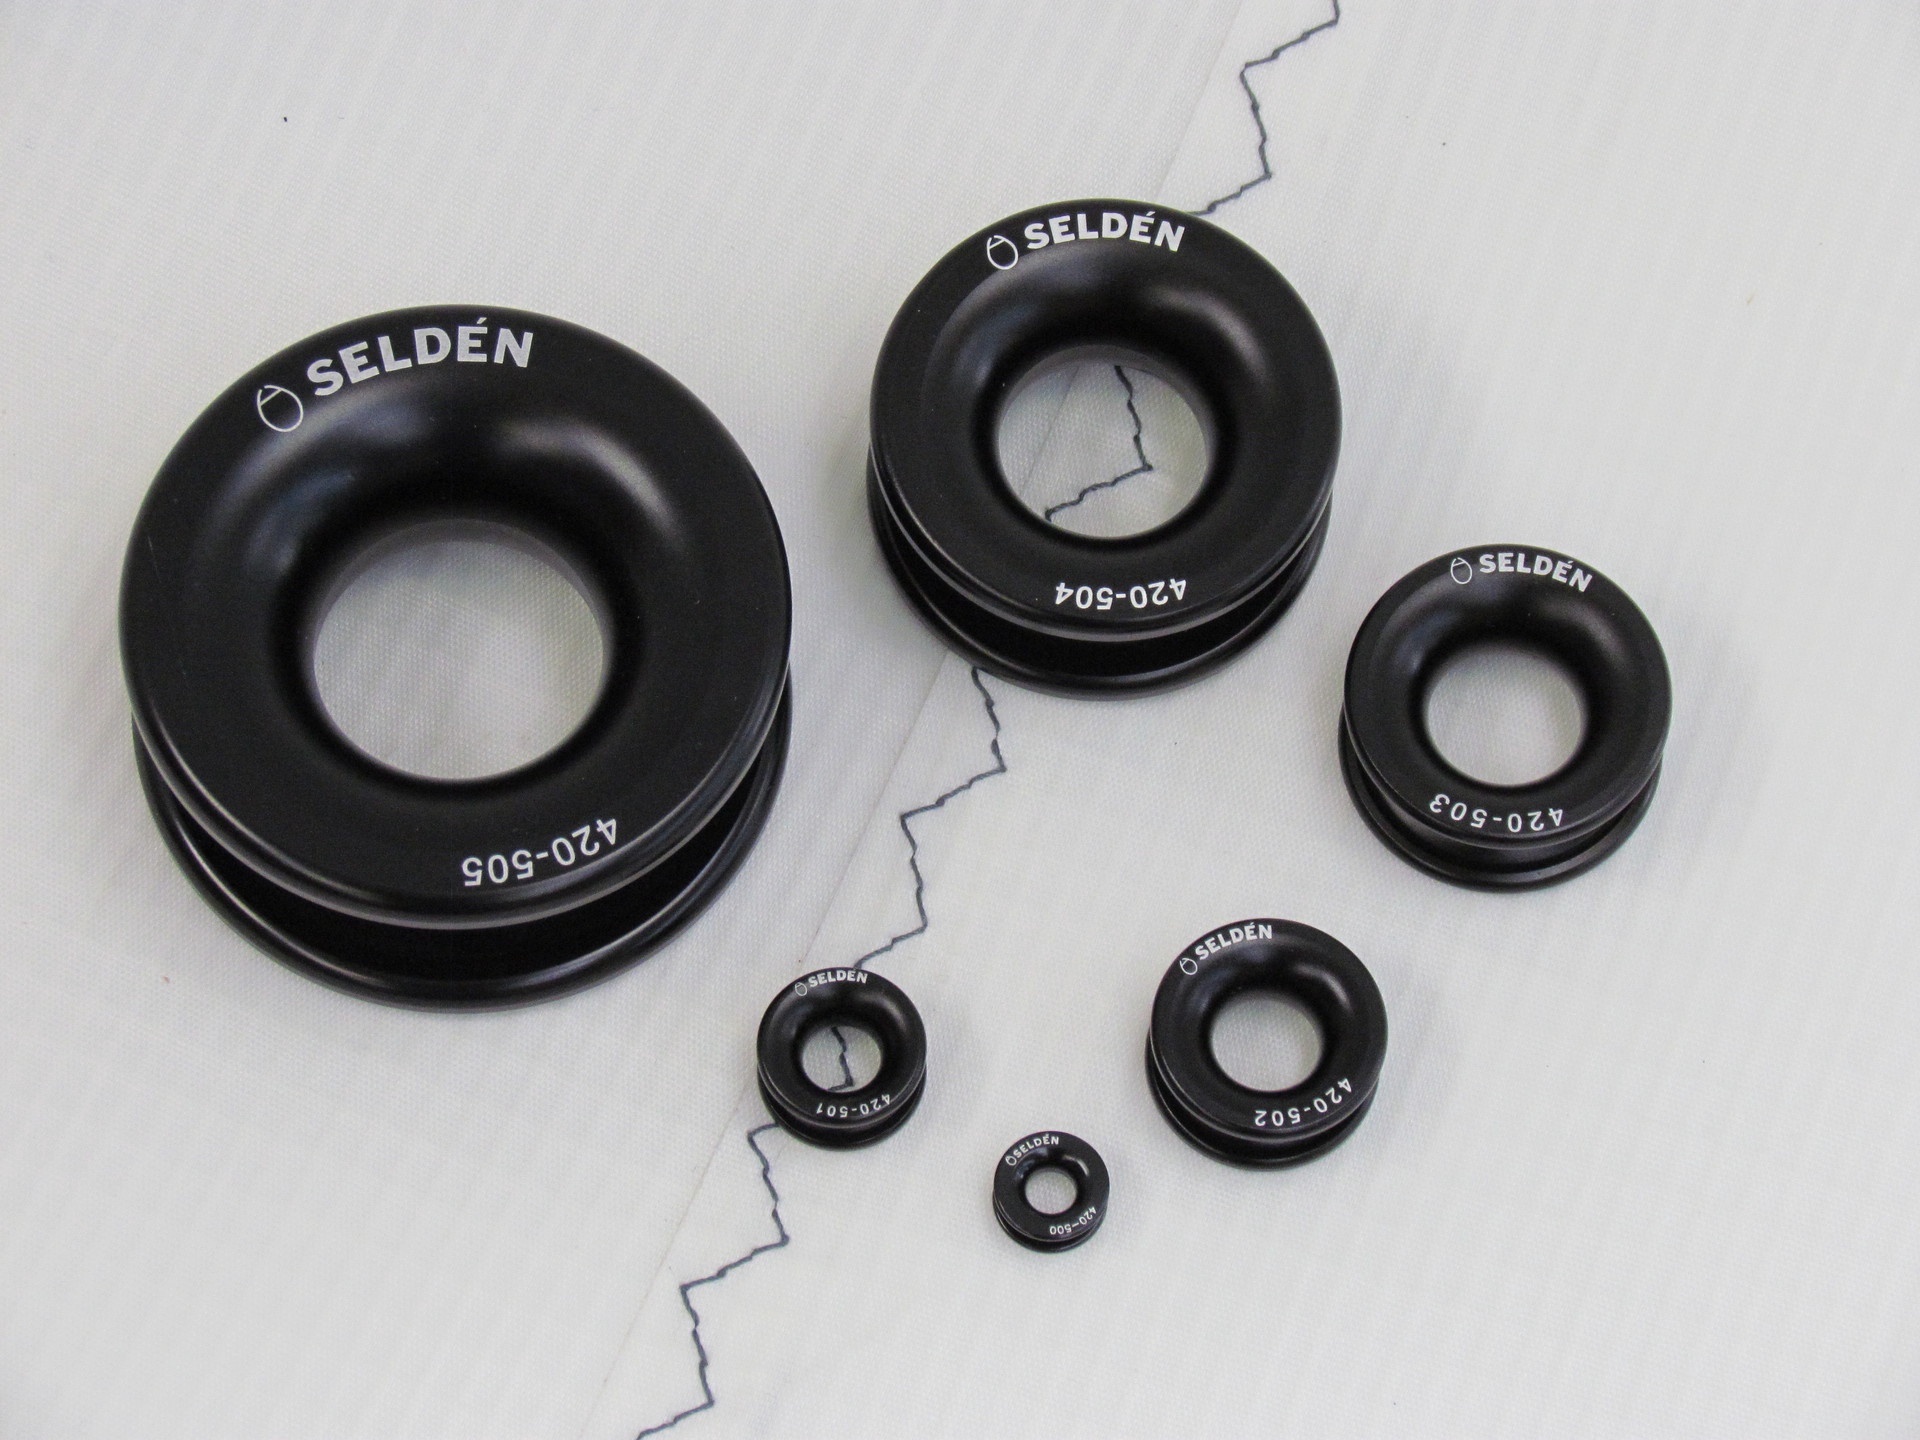 Selden Low Friction Ring 50/22